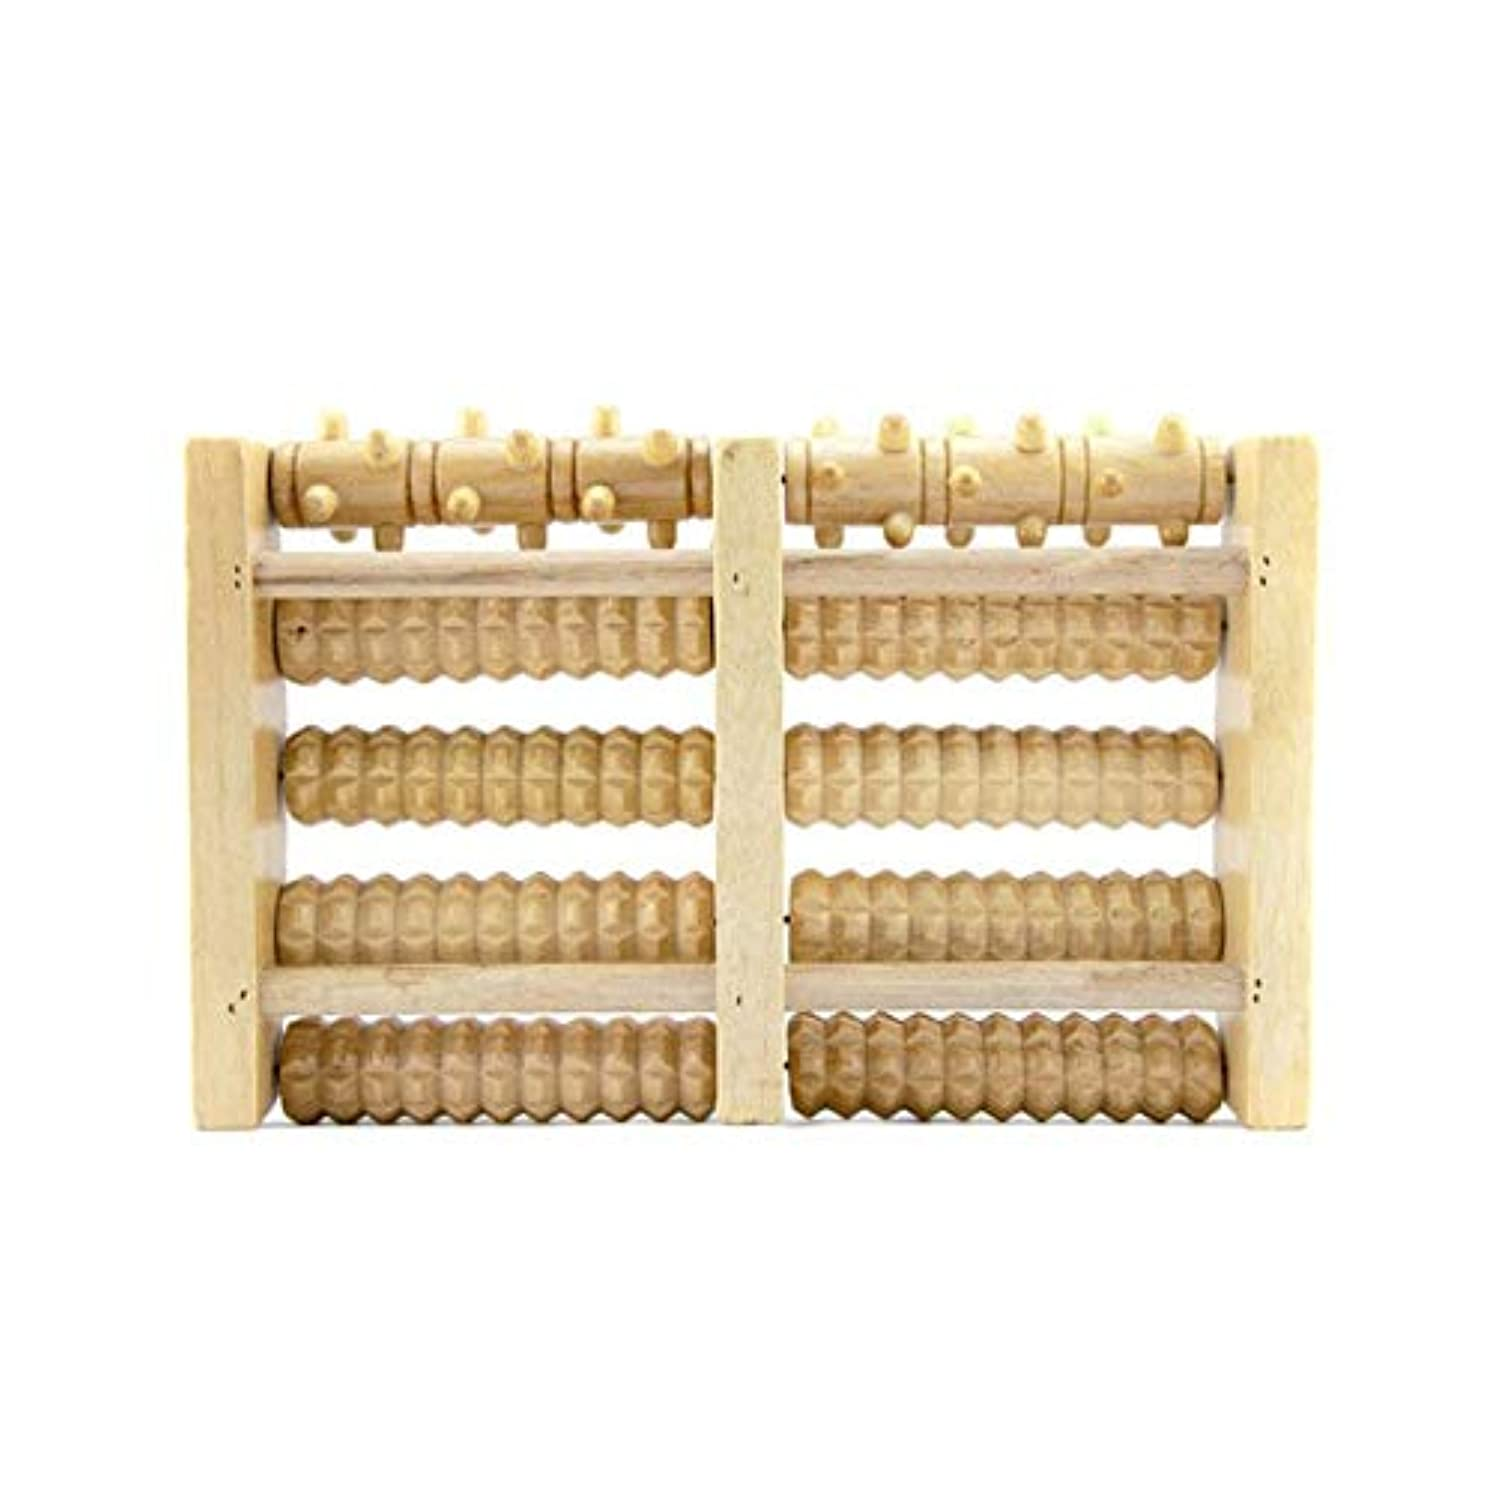 Wooden Foot Massager 5 Rollers Reflexology Relax Stress Pain Relief Blood Circulation Promotion Foot Care Instrument